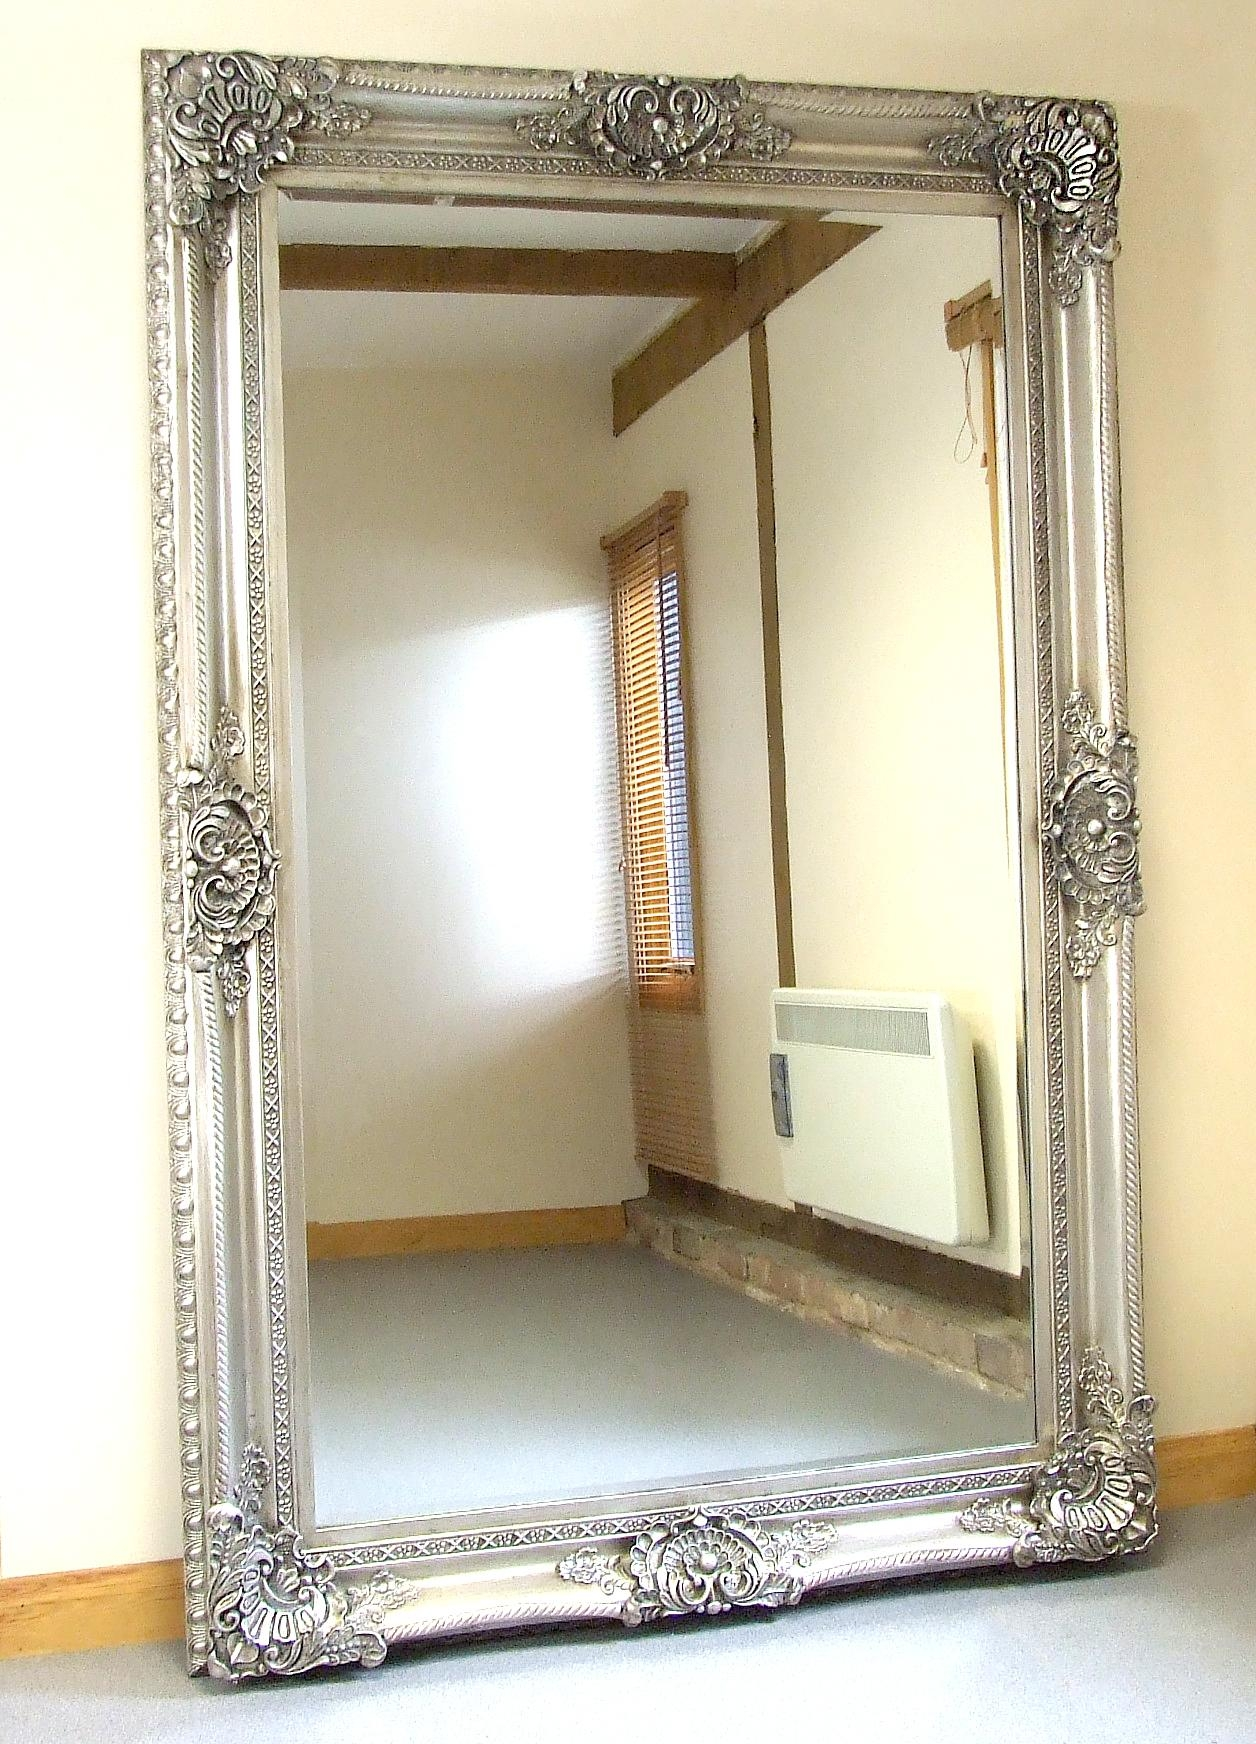 Flooring : Impressive Ornate Floor Mirror Photo Design Antique Within Ornate French Mirrors (Image 12 of 20)